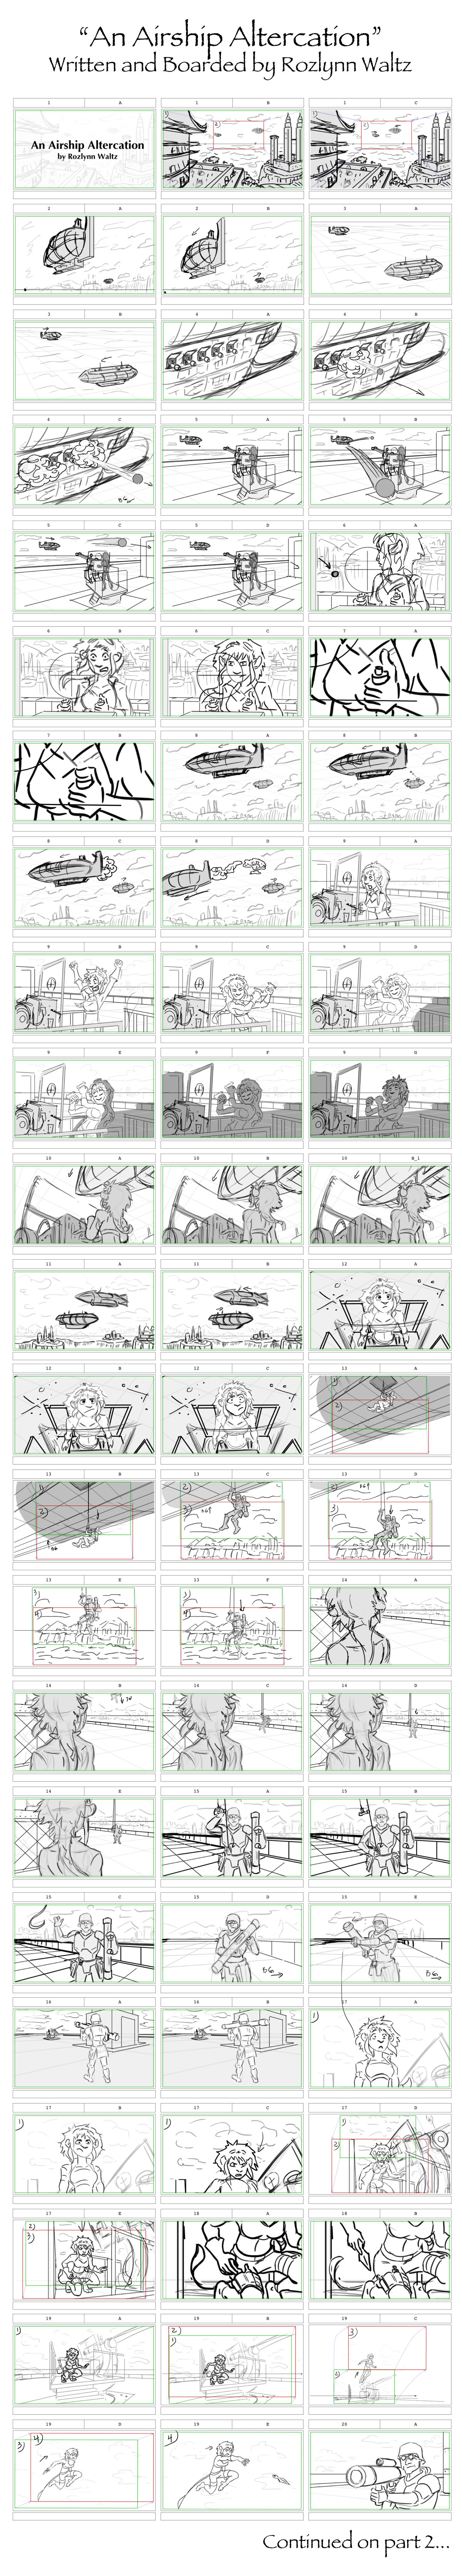 An Airship Altercation - Storyboards - Part 1 by RozlynnWaltz